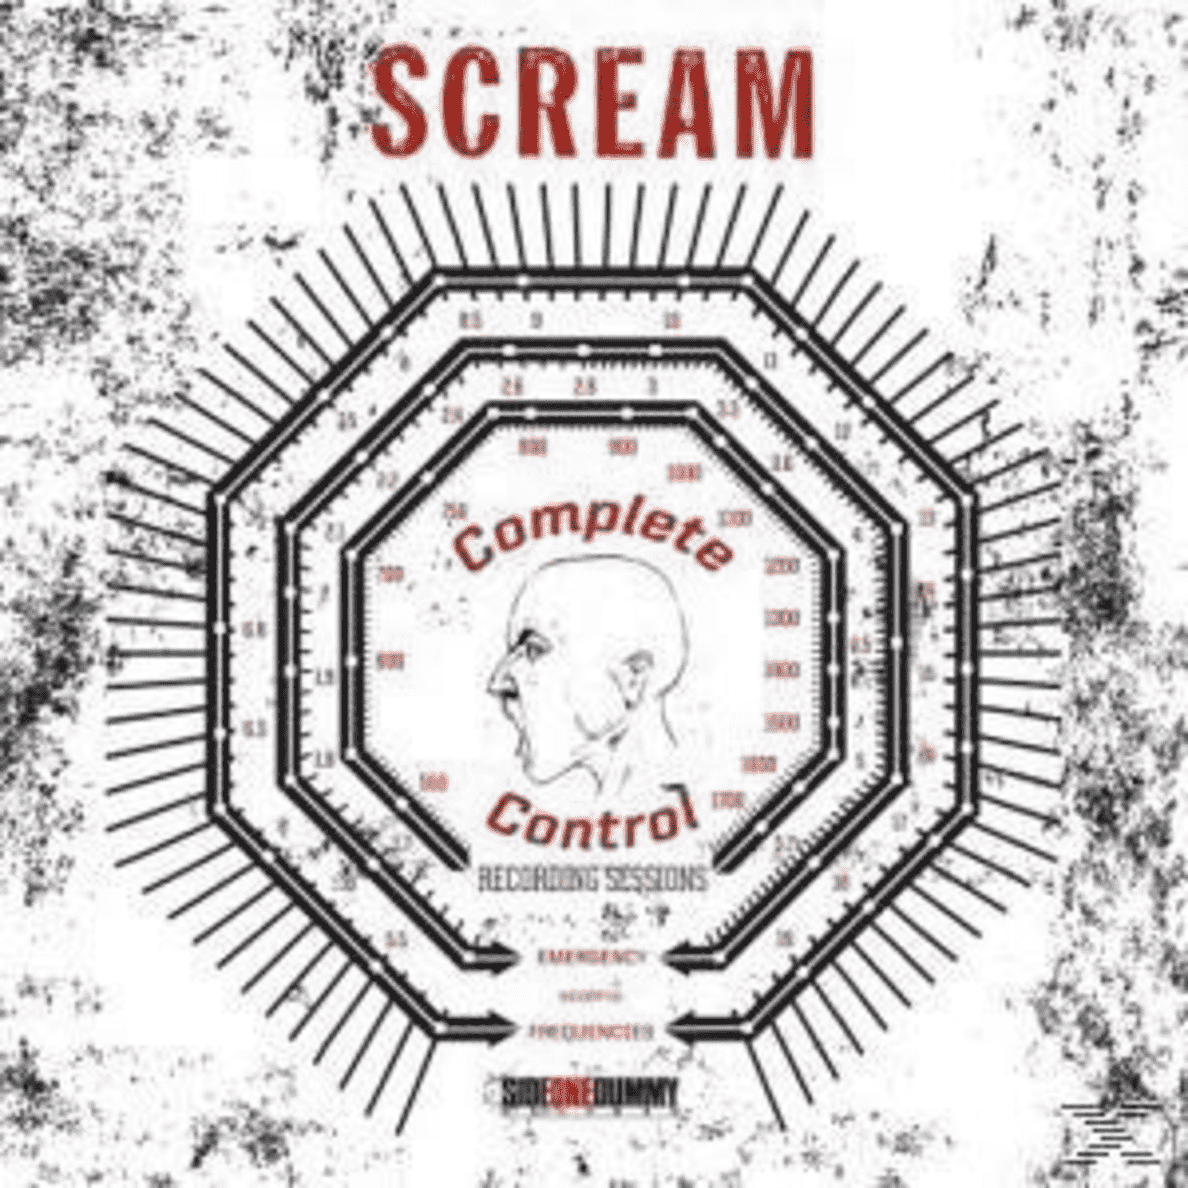 Scream - Complete Control Session - (EP (analog))